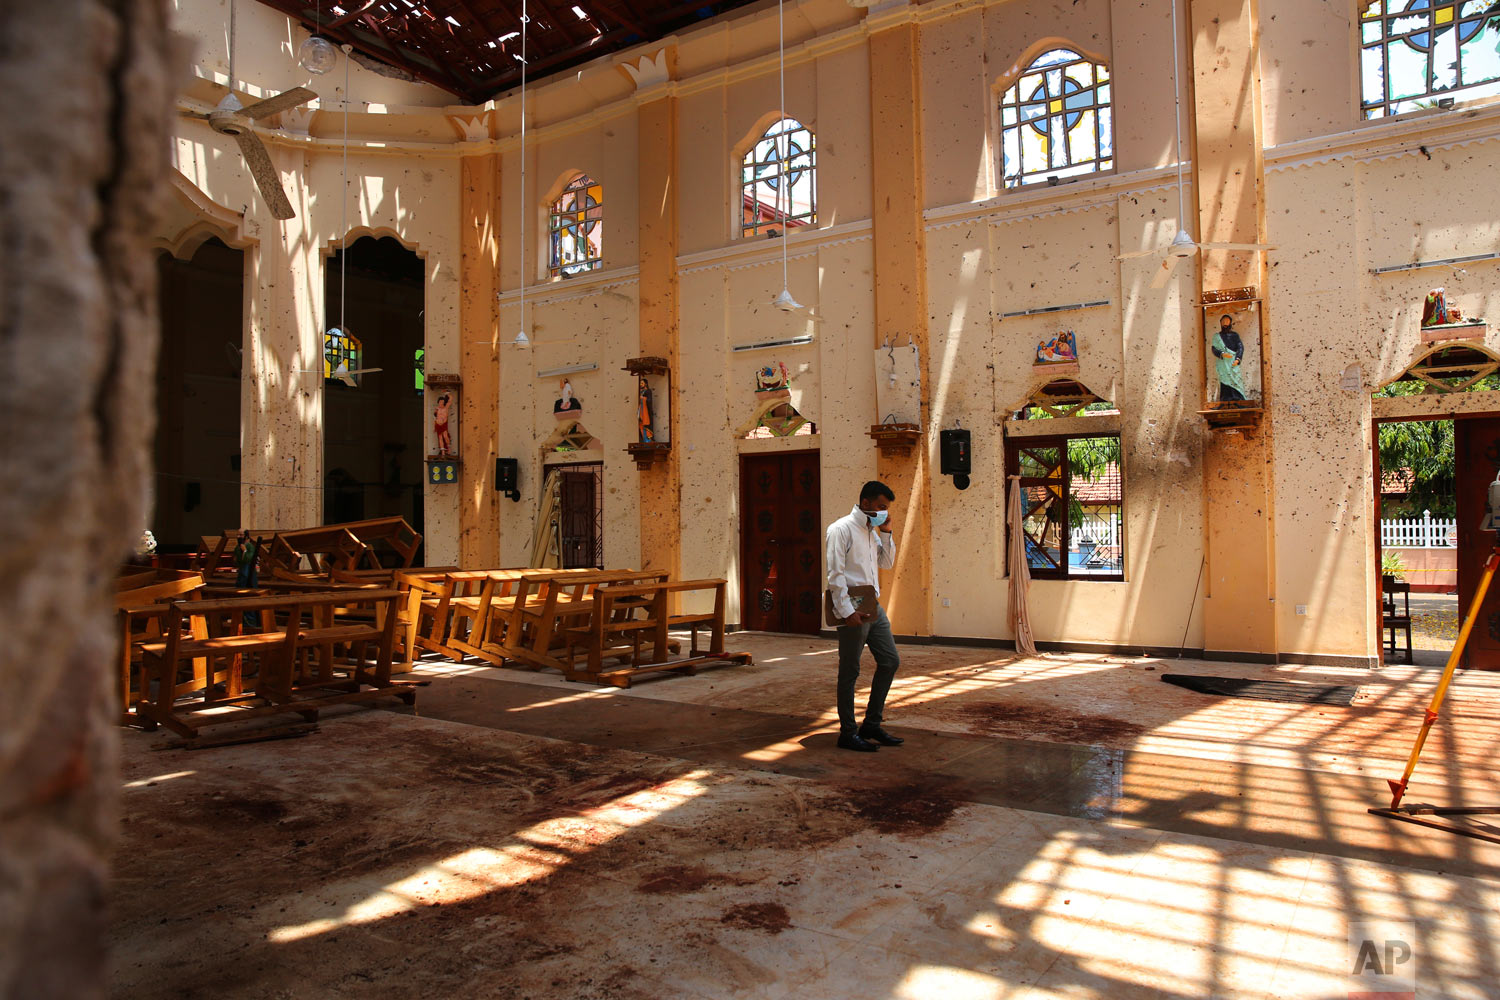 A surveyor walks inside the damaged St. Sebastian's Church where a suicide bomber blew himself up on Sunday Easter in Negombo, north of Colombo, Sri Lanka, April 25, 2019. (AP Photo/Manish Swarup)